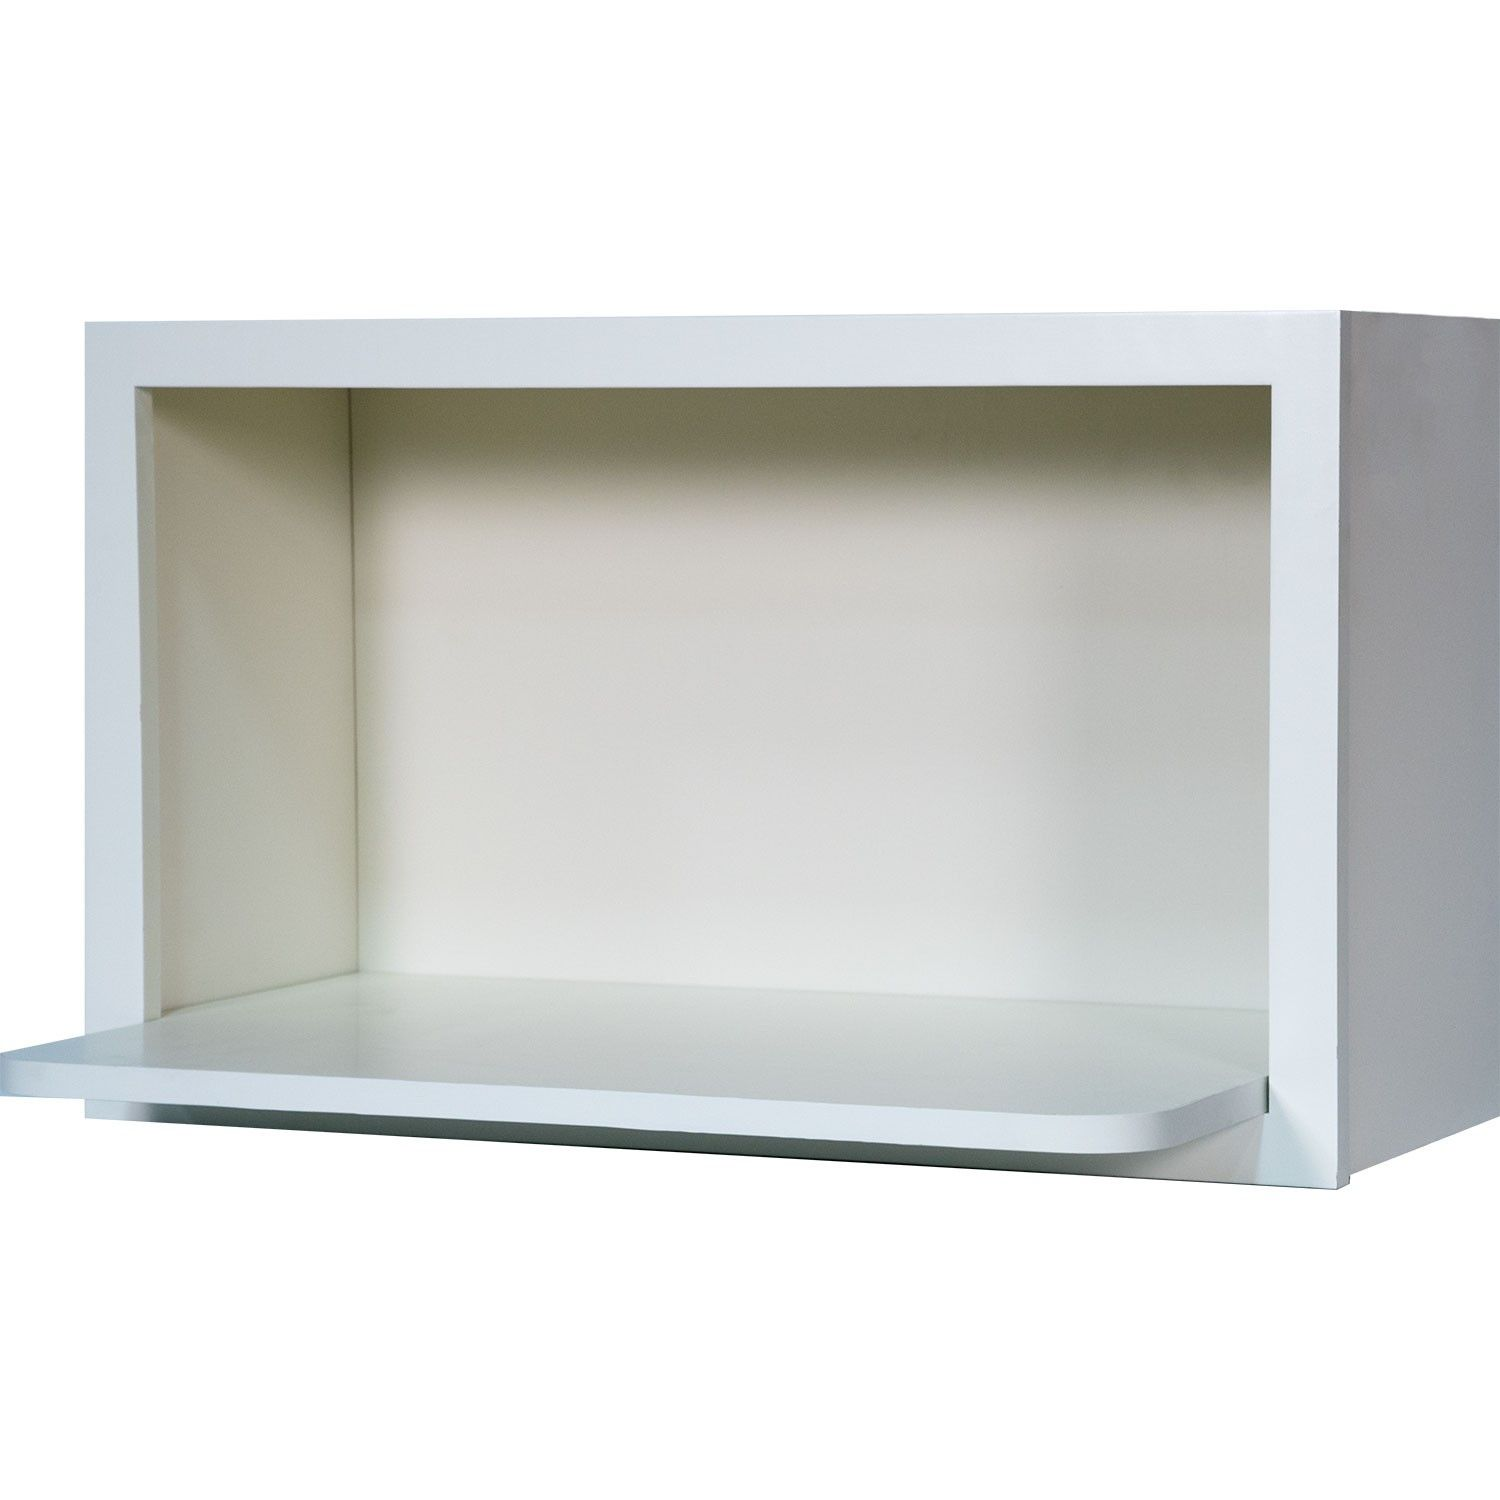 30 Inch Microwave Shelf Wall Cabinet In Shaker White 30 Everyday Cabinets Microwave Wall Shelf Microwave Wall Cabinet Microwave Shelf